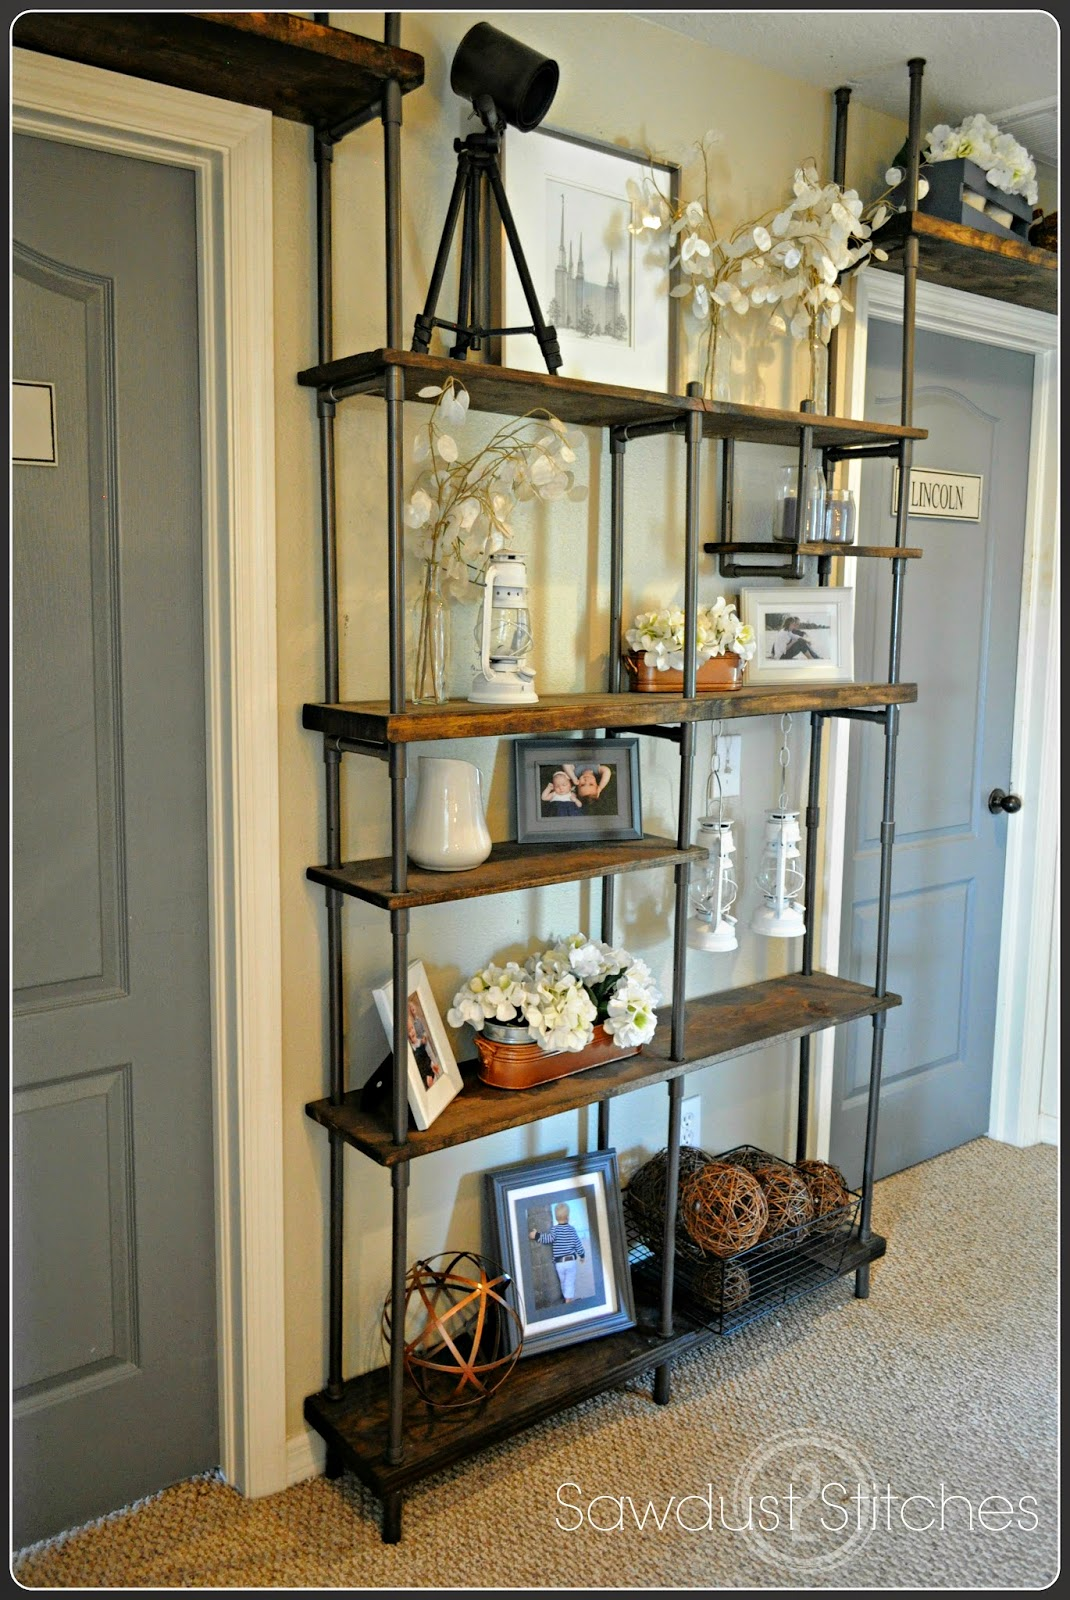 Remodelaholic build a budget friendly industrial shelf for Diy industrial bookshelf